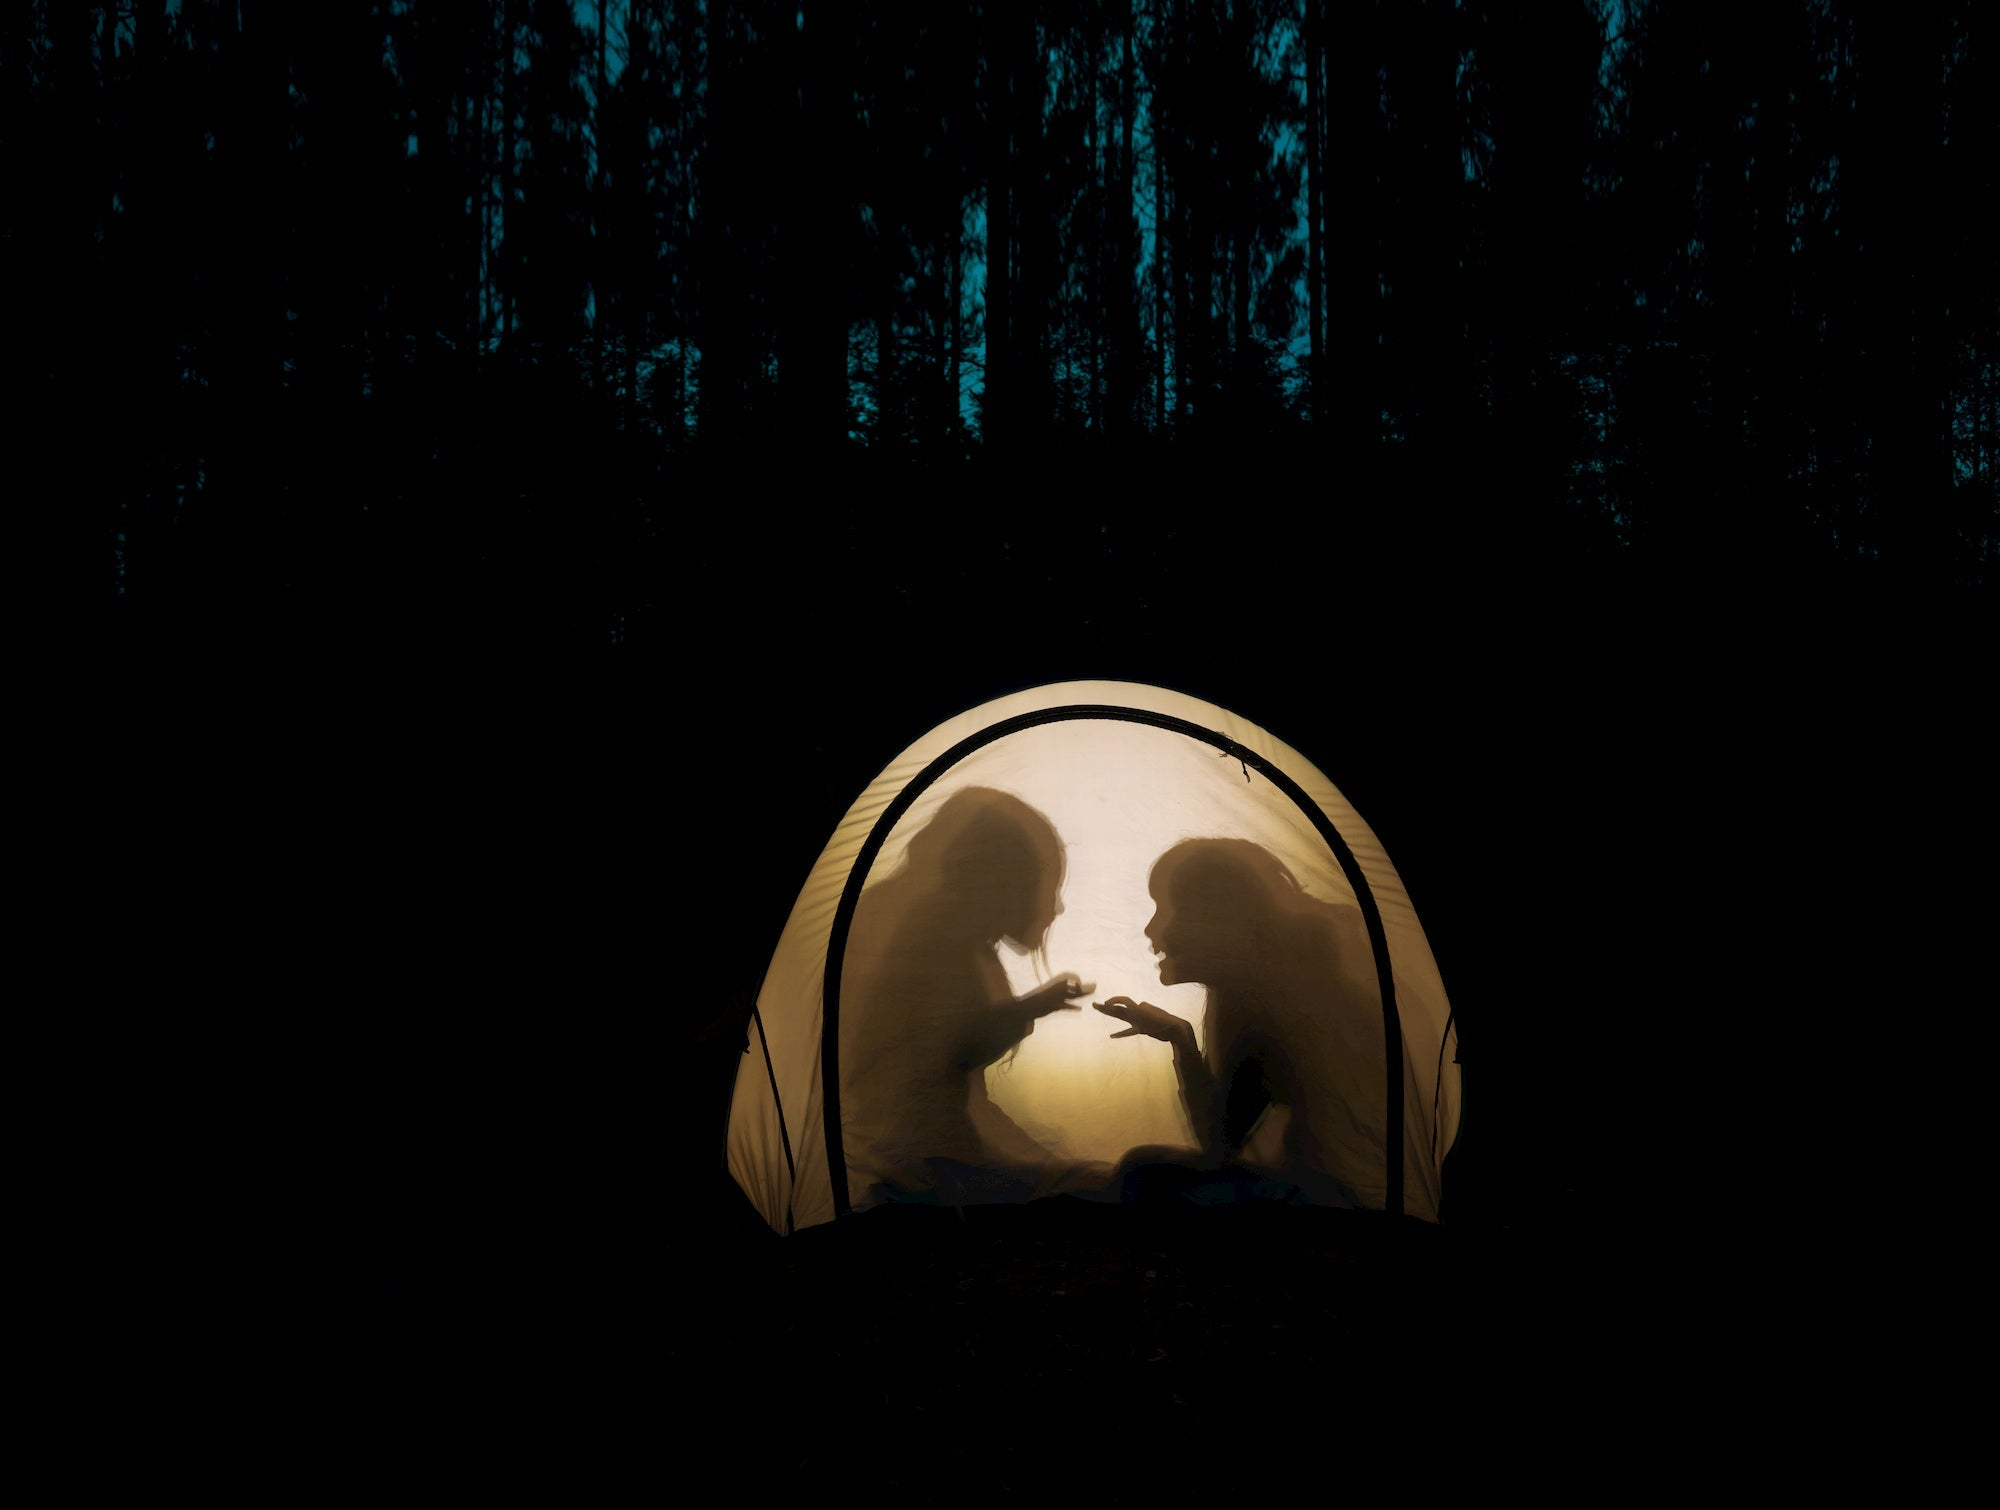 Scary camping stories during halloween.